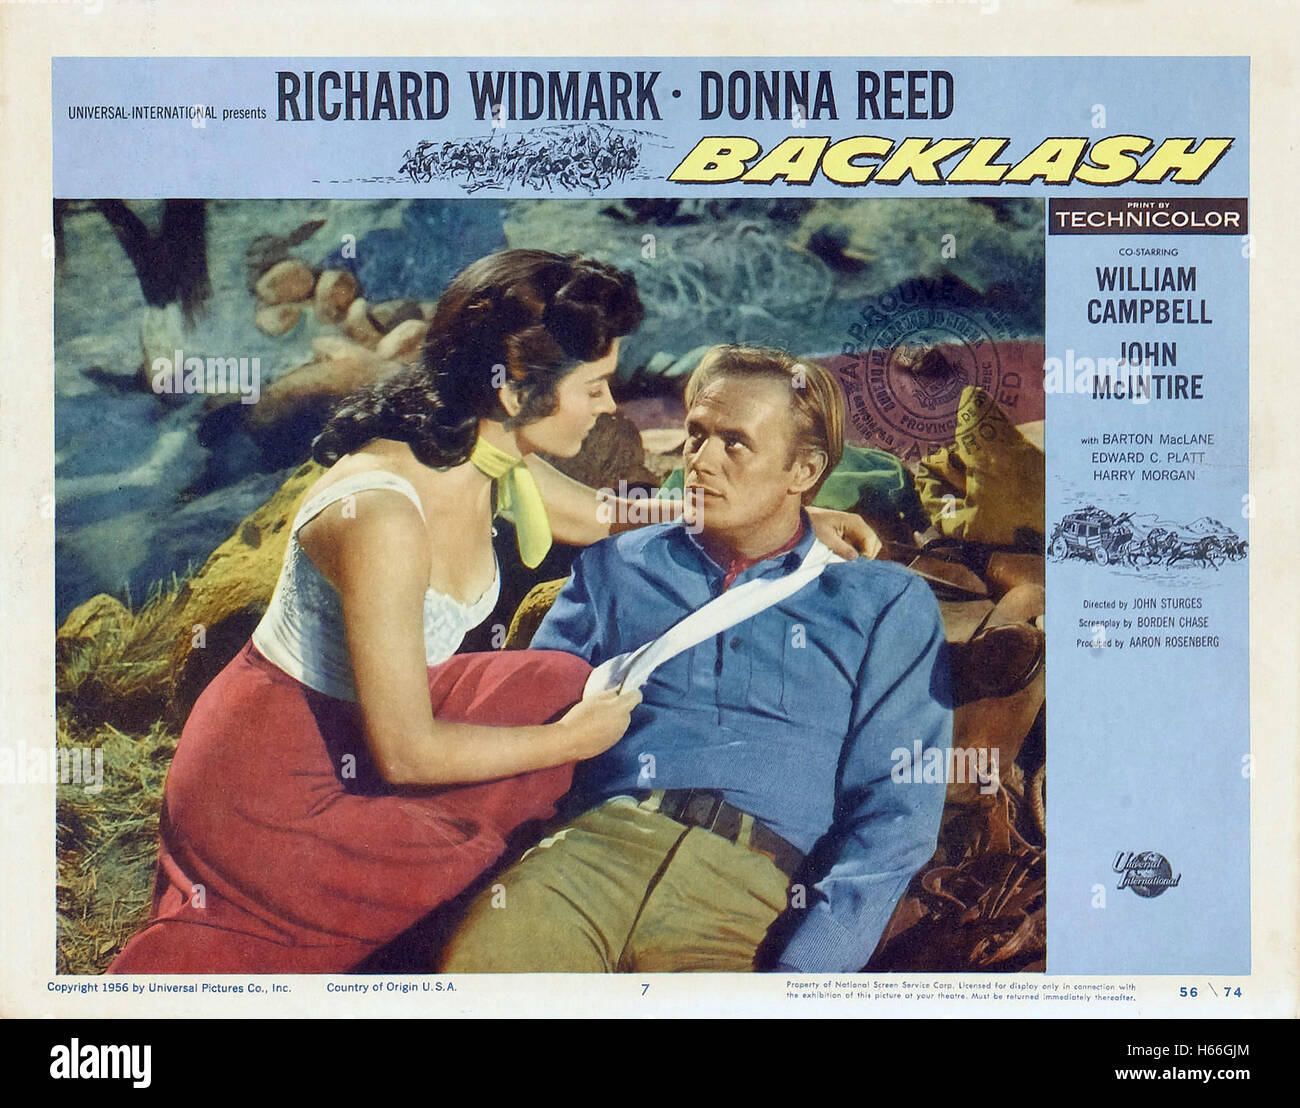 Backlash (1956) - Movie Poster - - Stock Image